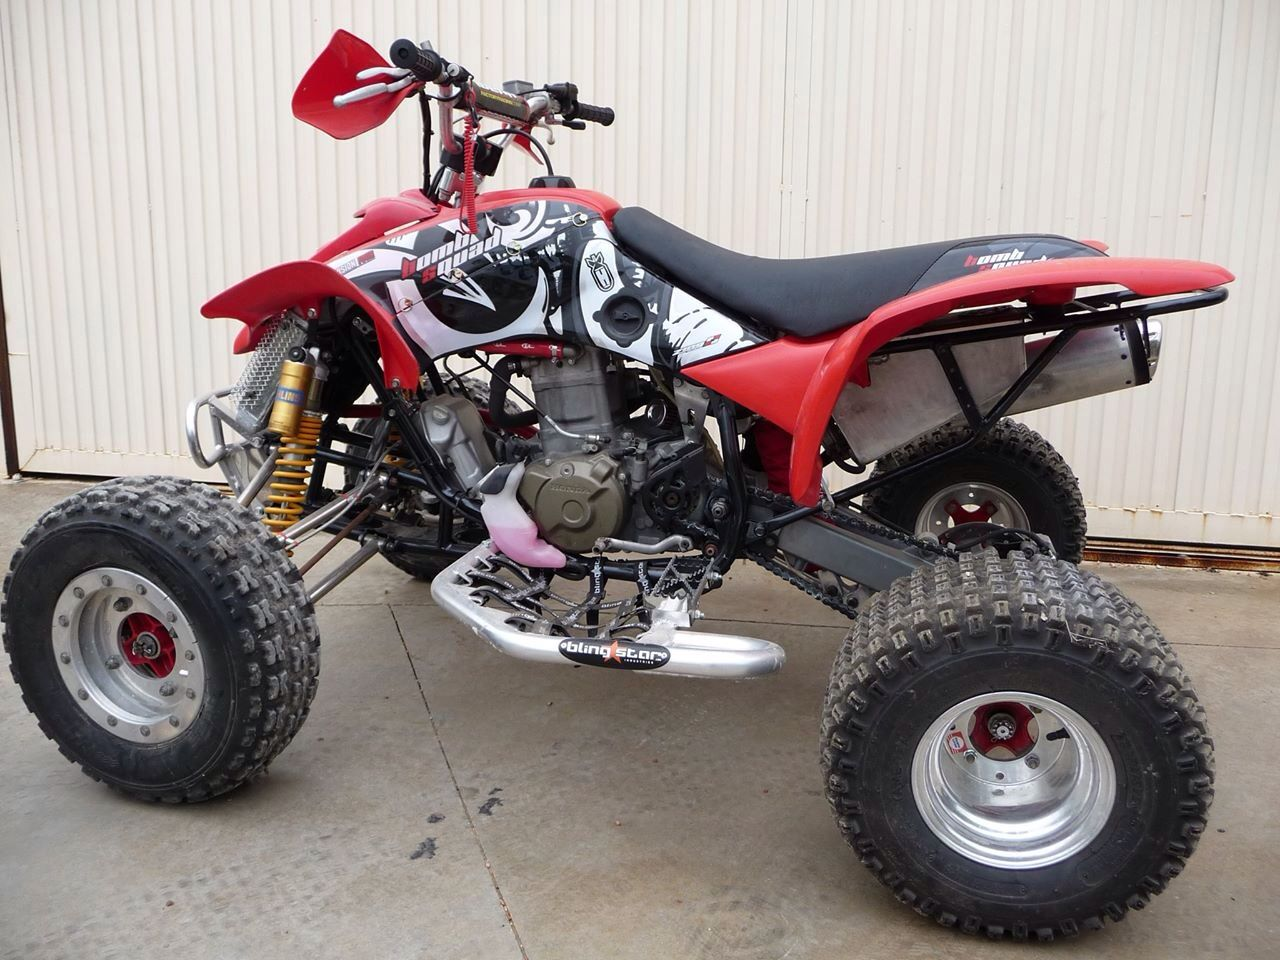 atv quad honda trx 650 ex was trx 400 ex transformed in 2001 to race and still used today atvs. Black Bedroom Furniture Sets. Home Design Ideas